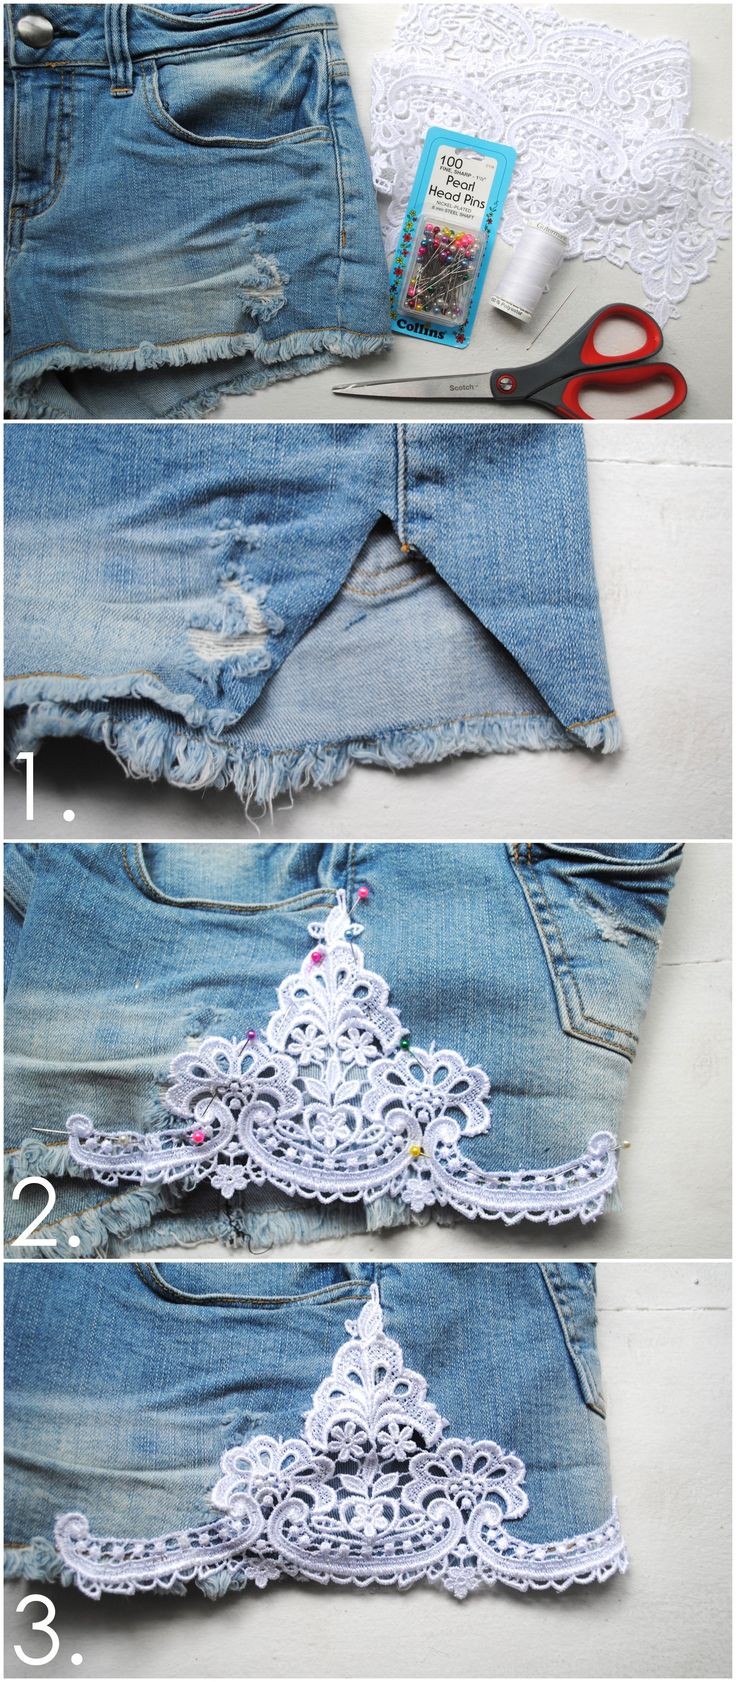 DIY: lace shorts--for a touch of ladylike!